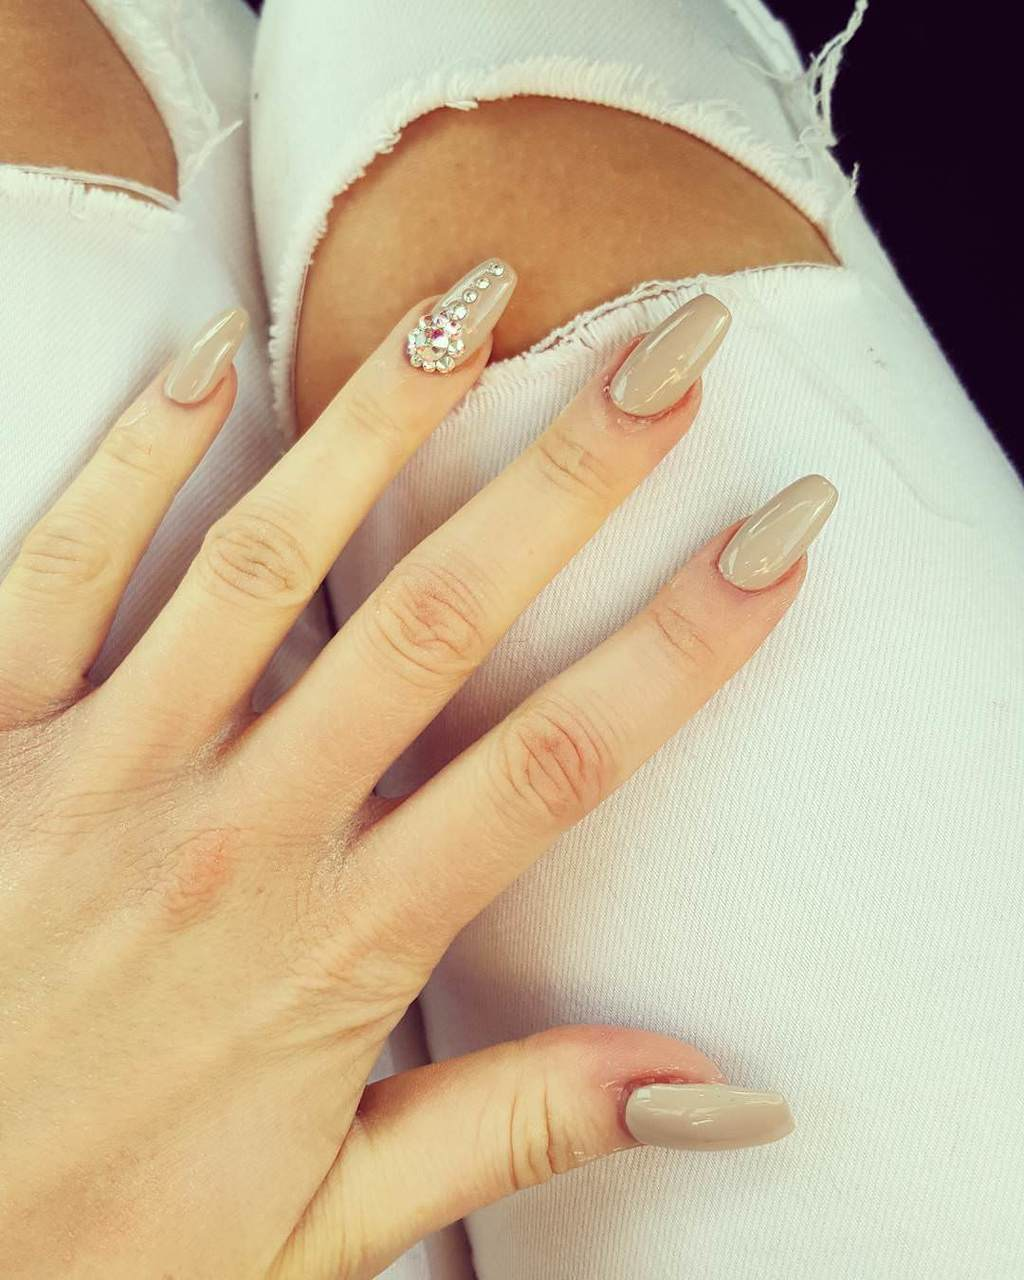 75 Epic Acrylic Nail Designs For Real Lovers